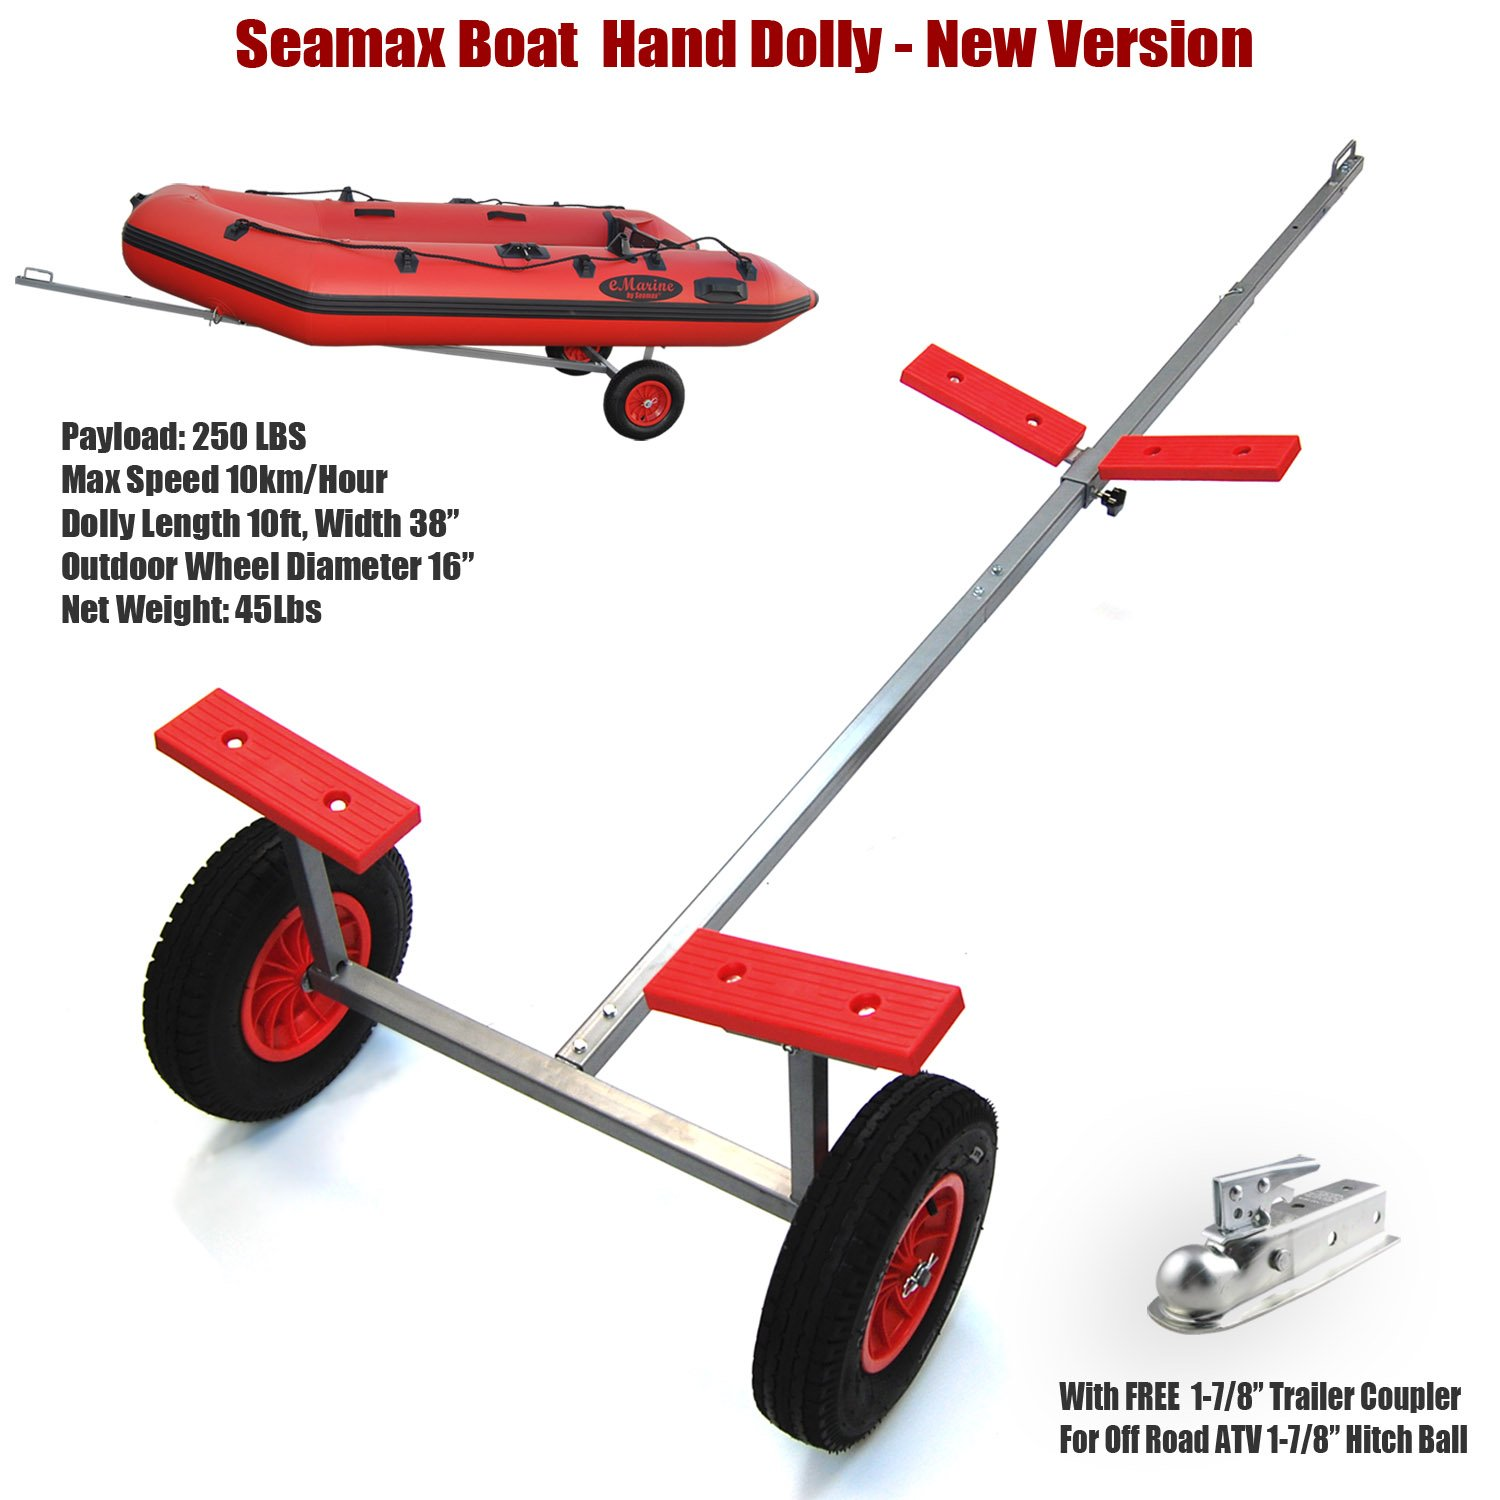 SEAMAX Portable Boat Carry and Launch Hand Dolly Set with 16'' Pneumatic Wheels by SEAMAX